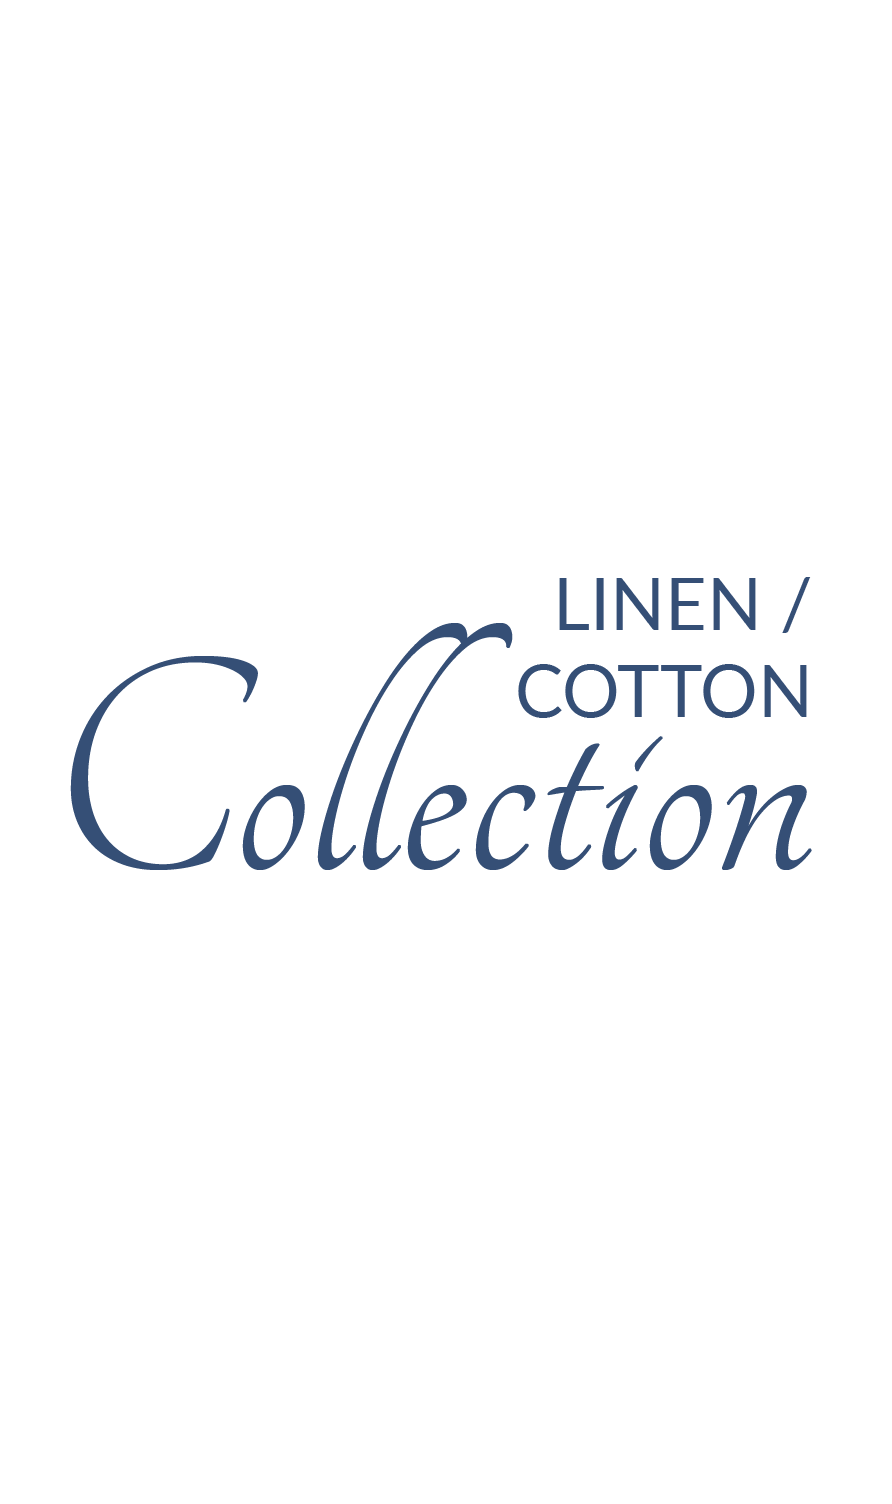 Exclusive Linen/Cotton Collection. Machine Wash Cold, Hang Dry